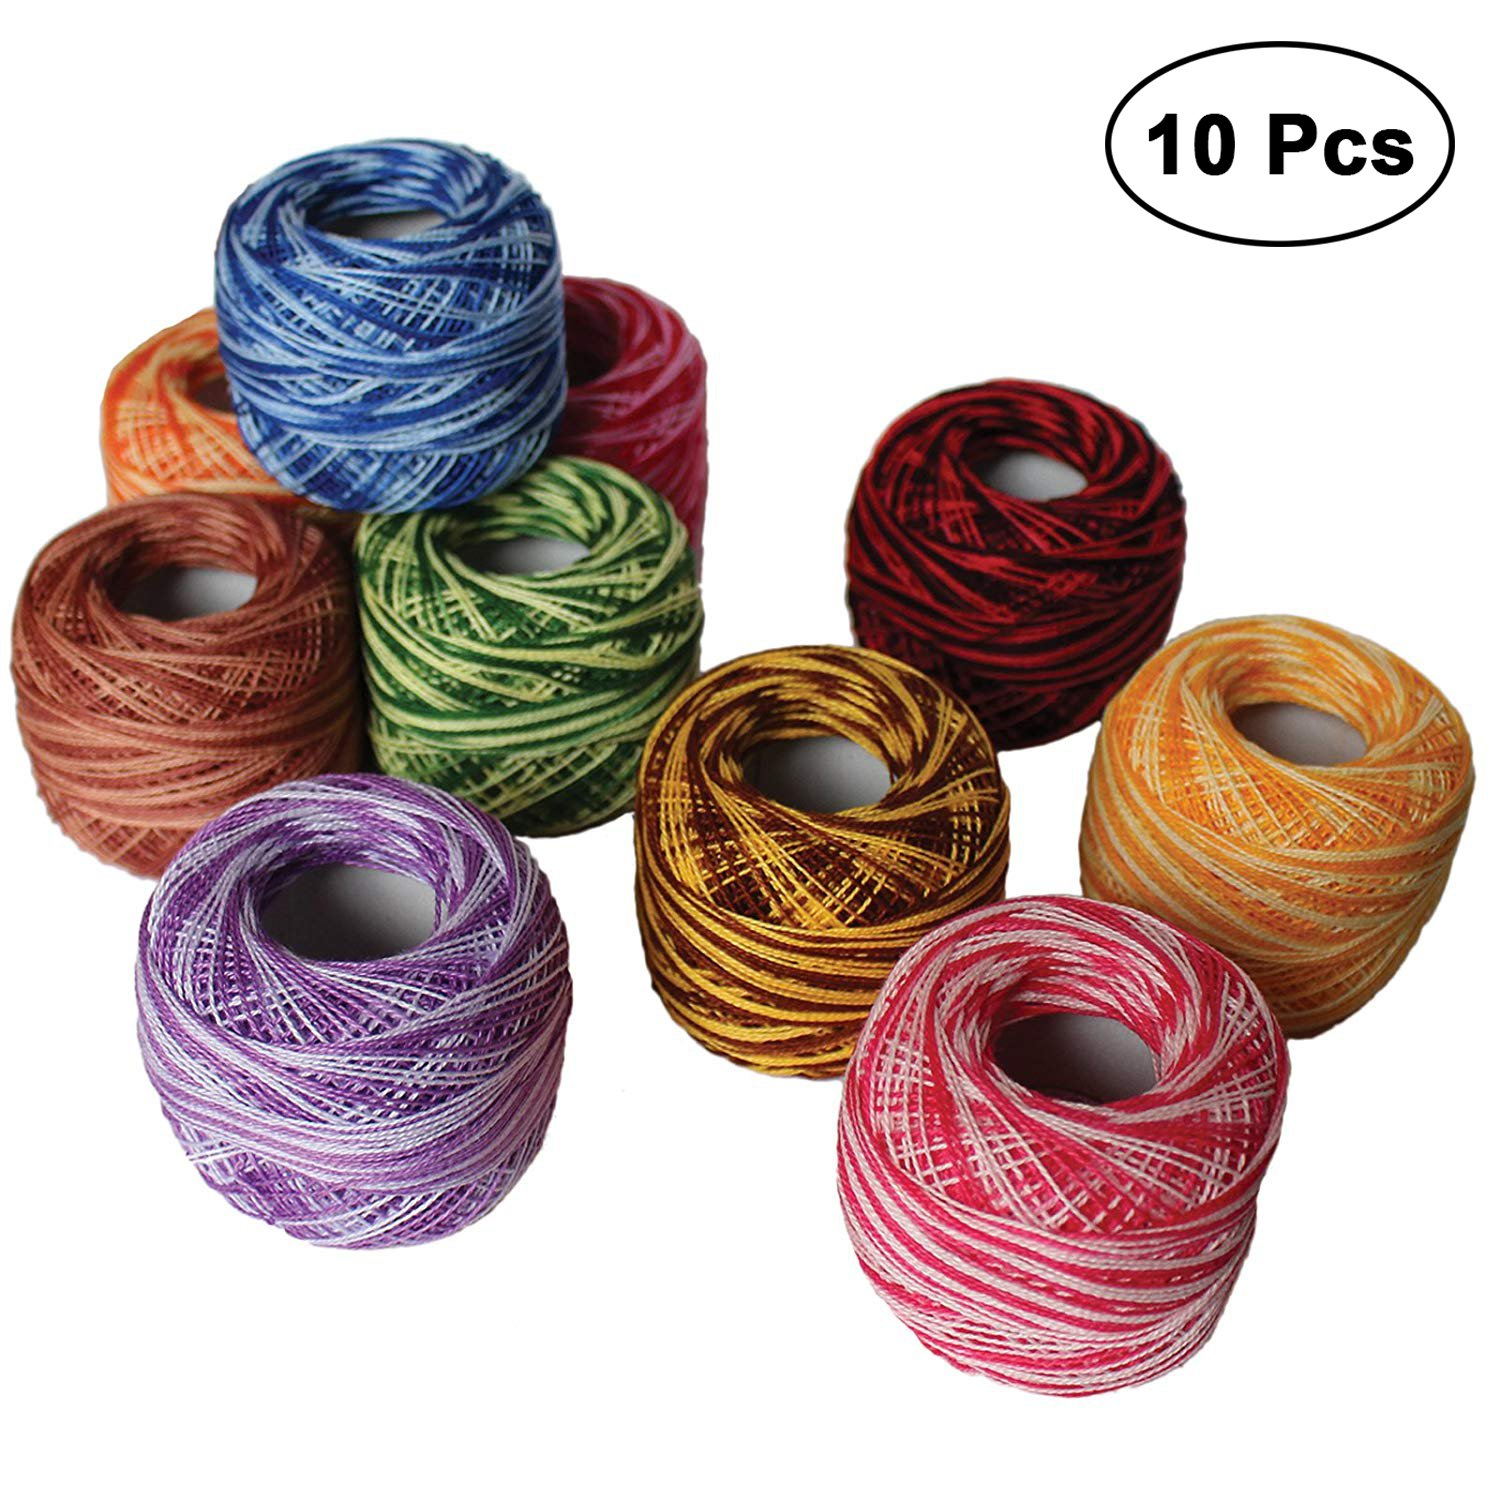 KURTZY 10 Pcs Crochet Threads size of 8-20g / 170m Cotton Crochet Thread Set Balls - Ideal for Cross Stitch, Needlepoint Hand Embroidery, Quilting Patterns, Projects and Applique - Assorted WO-644